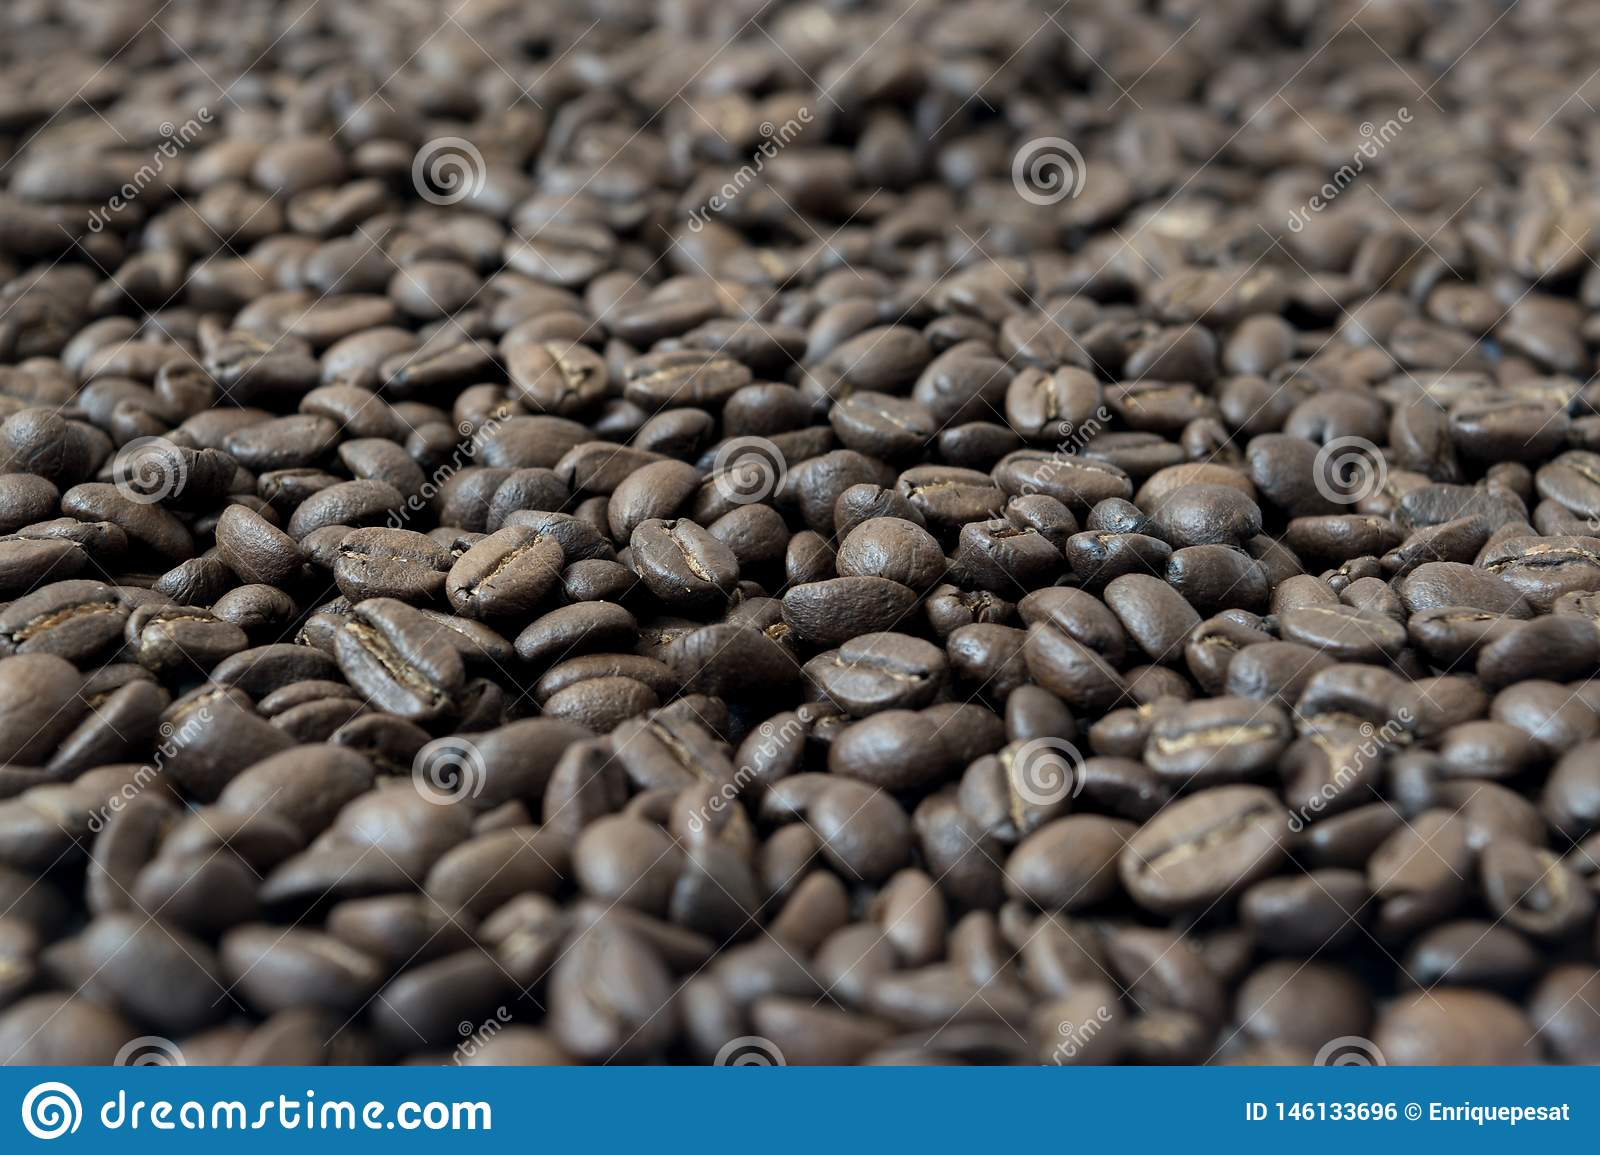 Background made of coffee beans